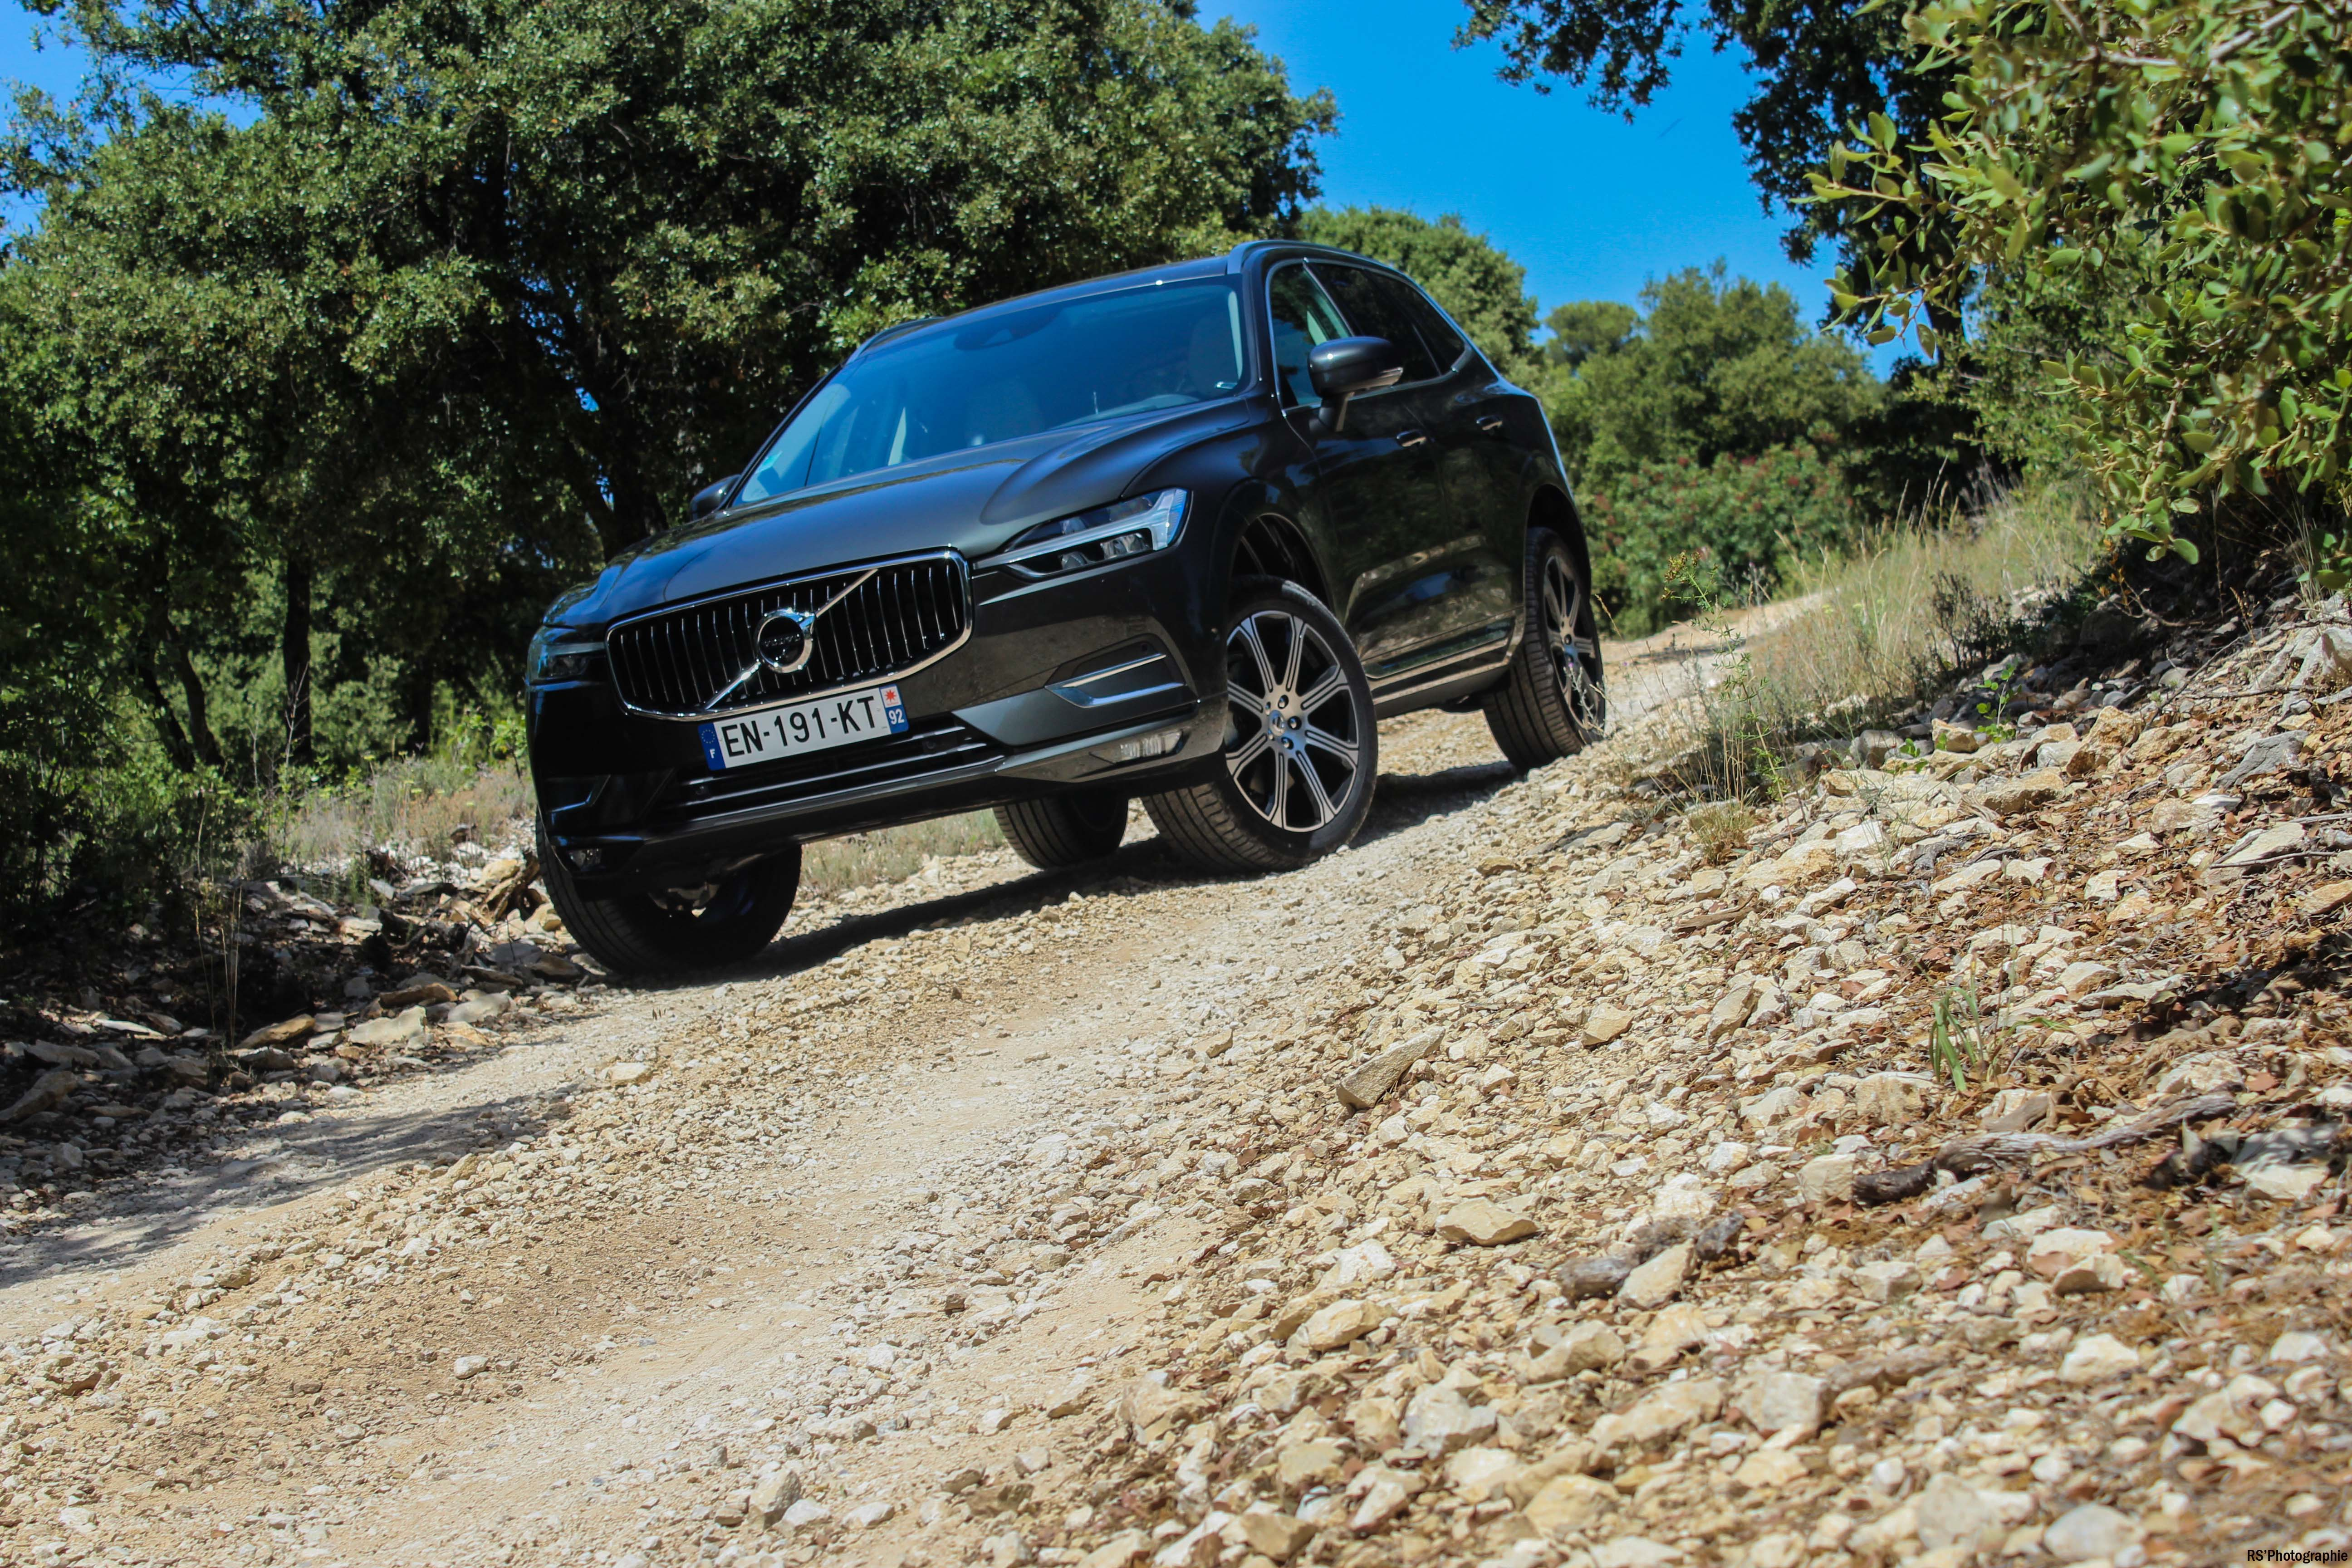 OpéVolvo45-volvo-xc60-avant-front-Arnaud Demasier-RSPhotographie